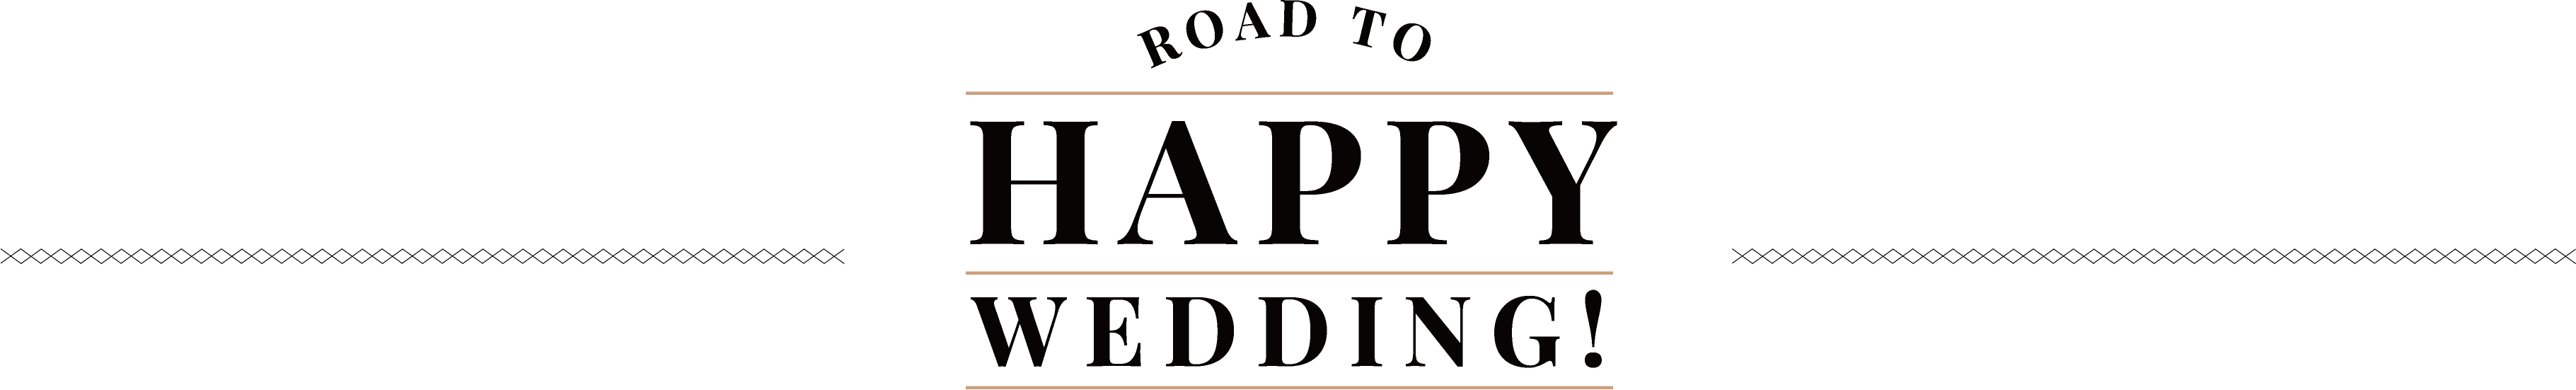 ROAD TO HAPPY WEDDING!